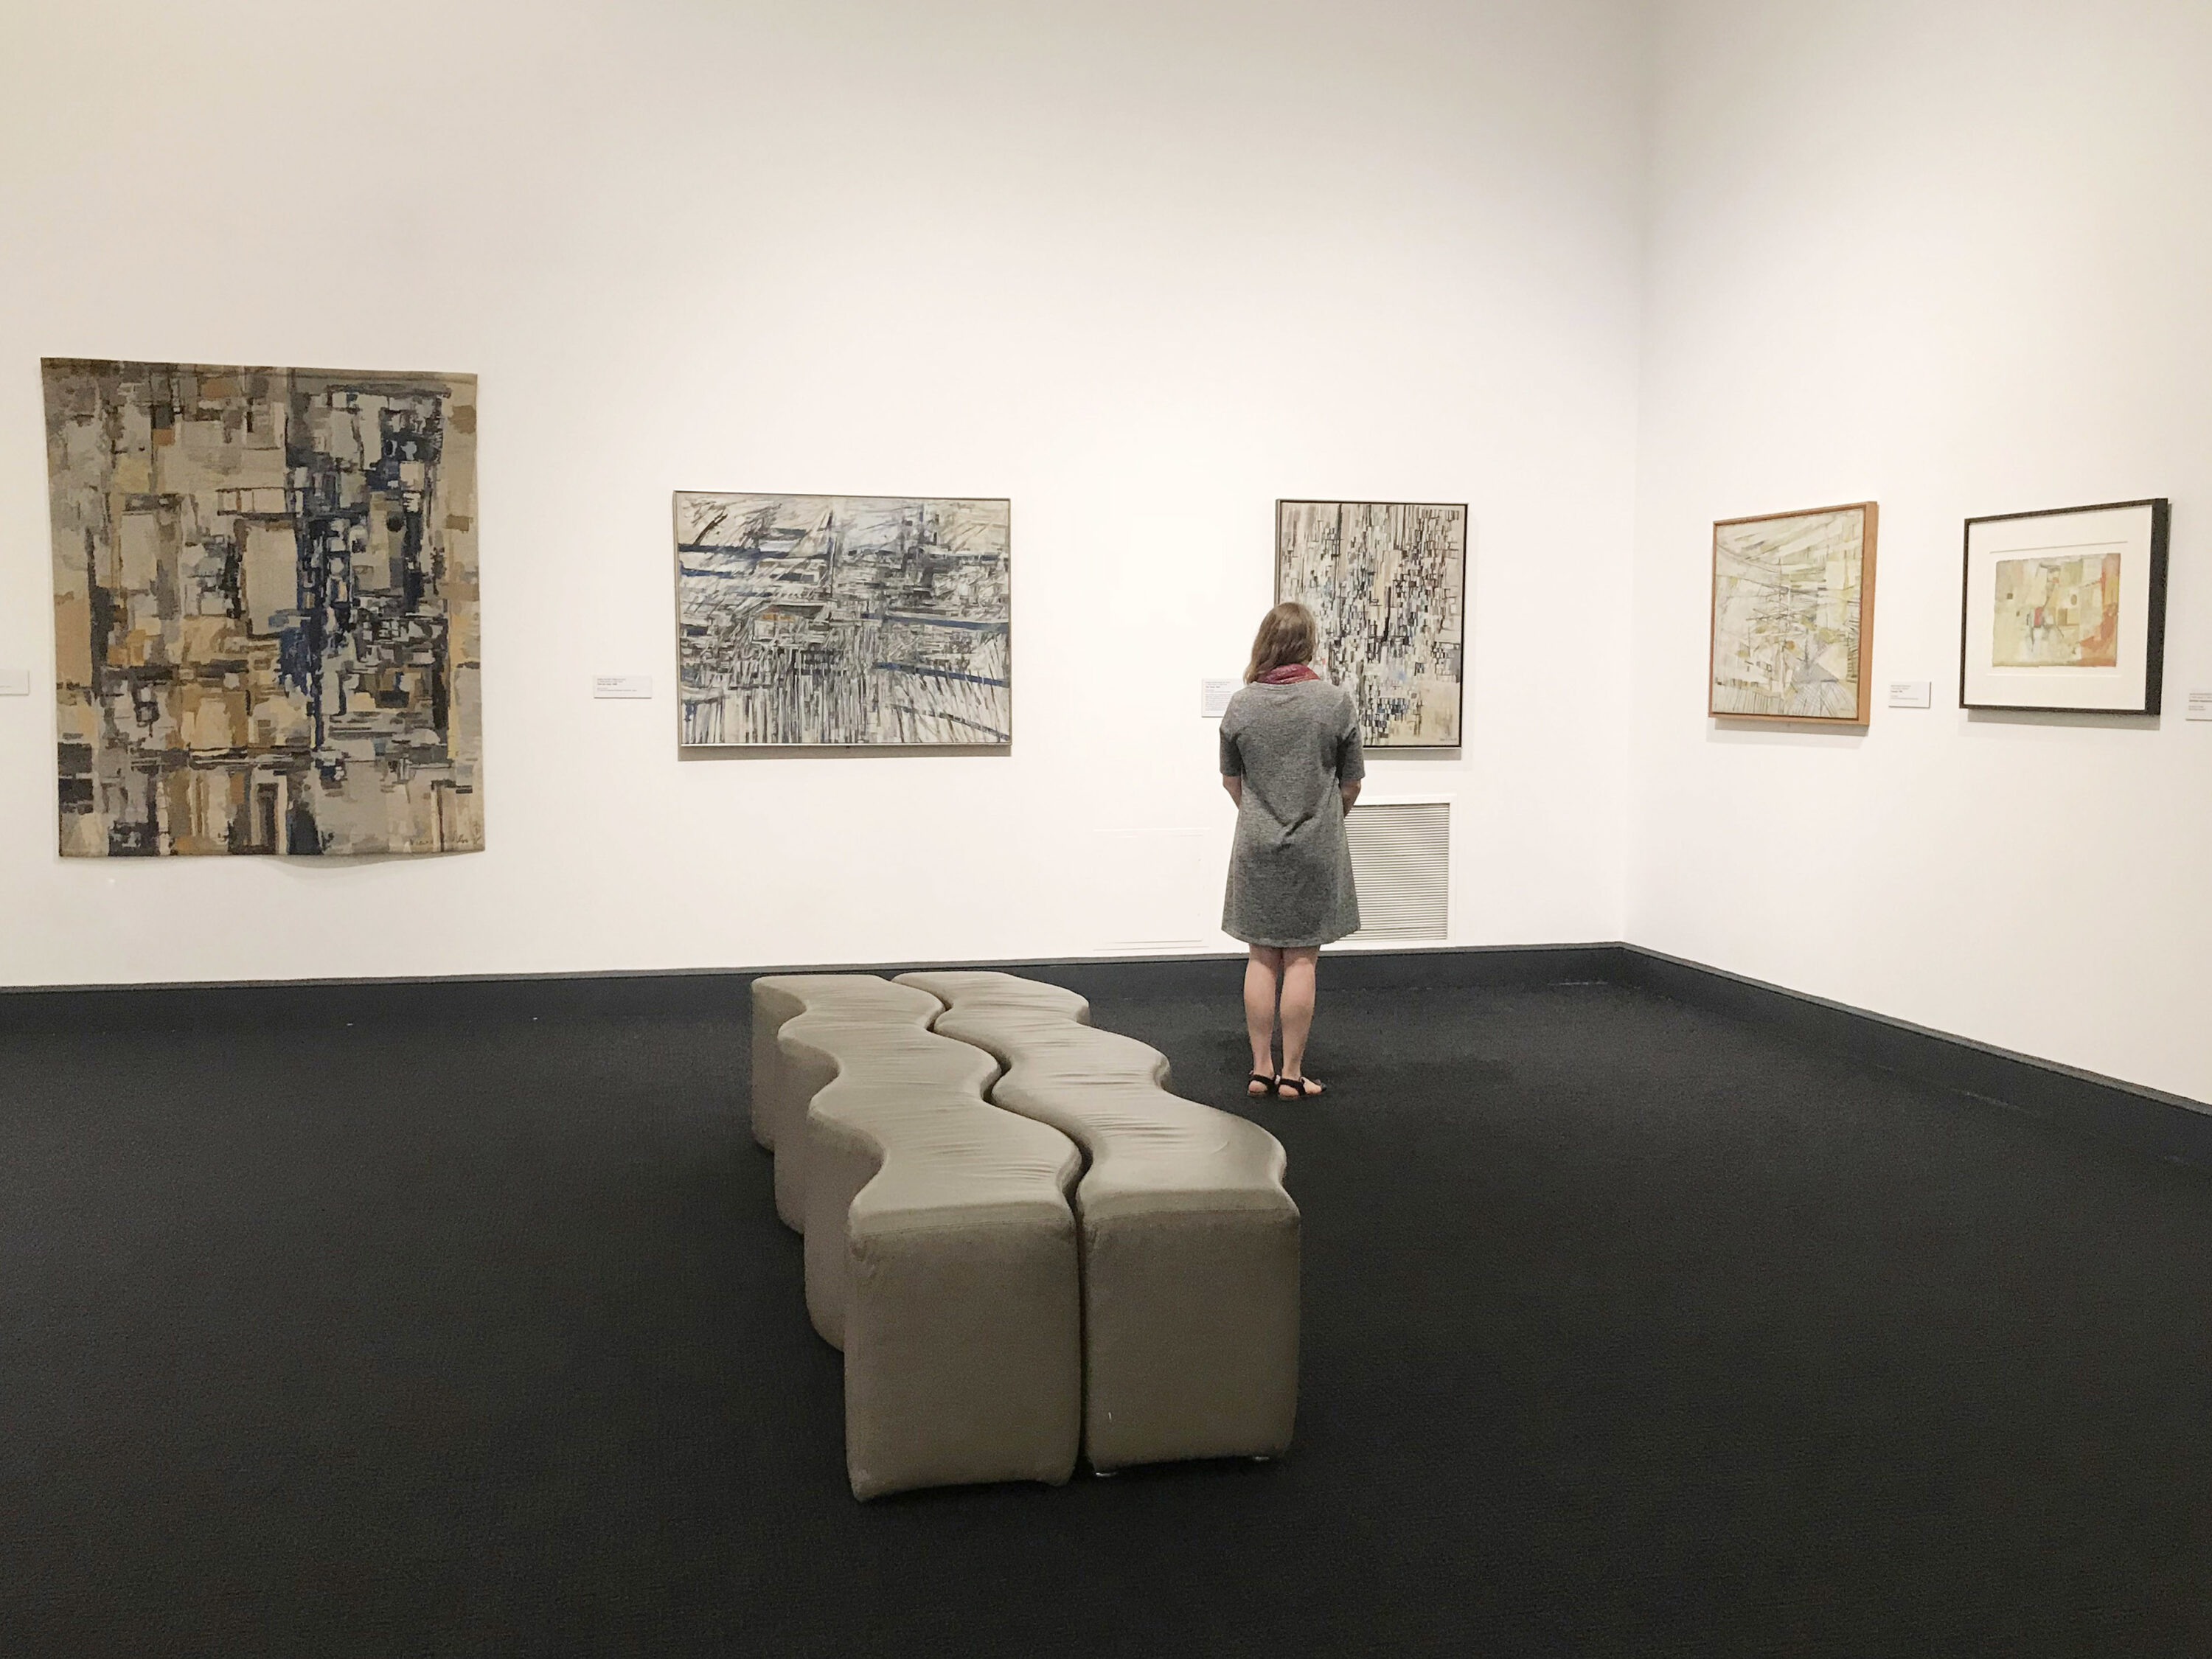 Large, abstract paintings that are light gray with black shapes and lines layered over them hang on white walls. The floor is dark gray and there is a light gray, squiggly bench. A light-skinned adult woman in a gray dress stands, looking at the paintings and away from the viewer.